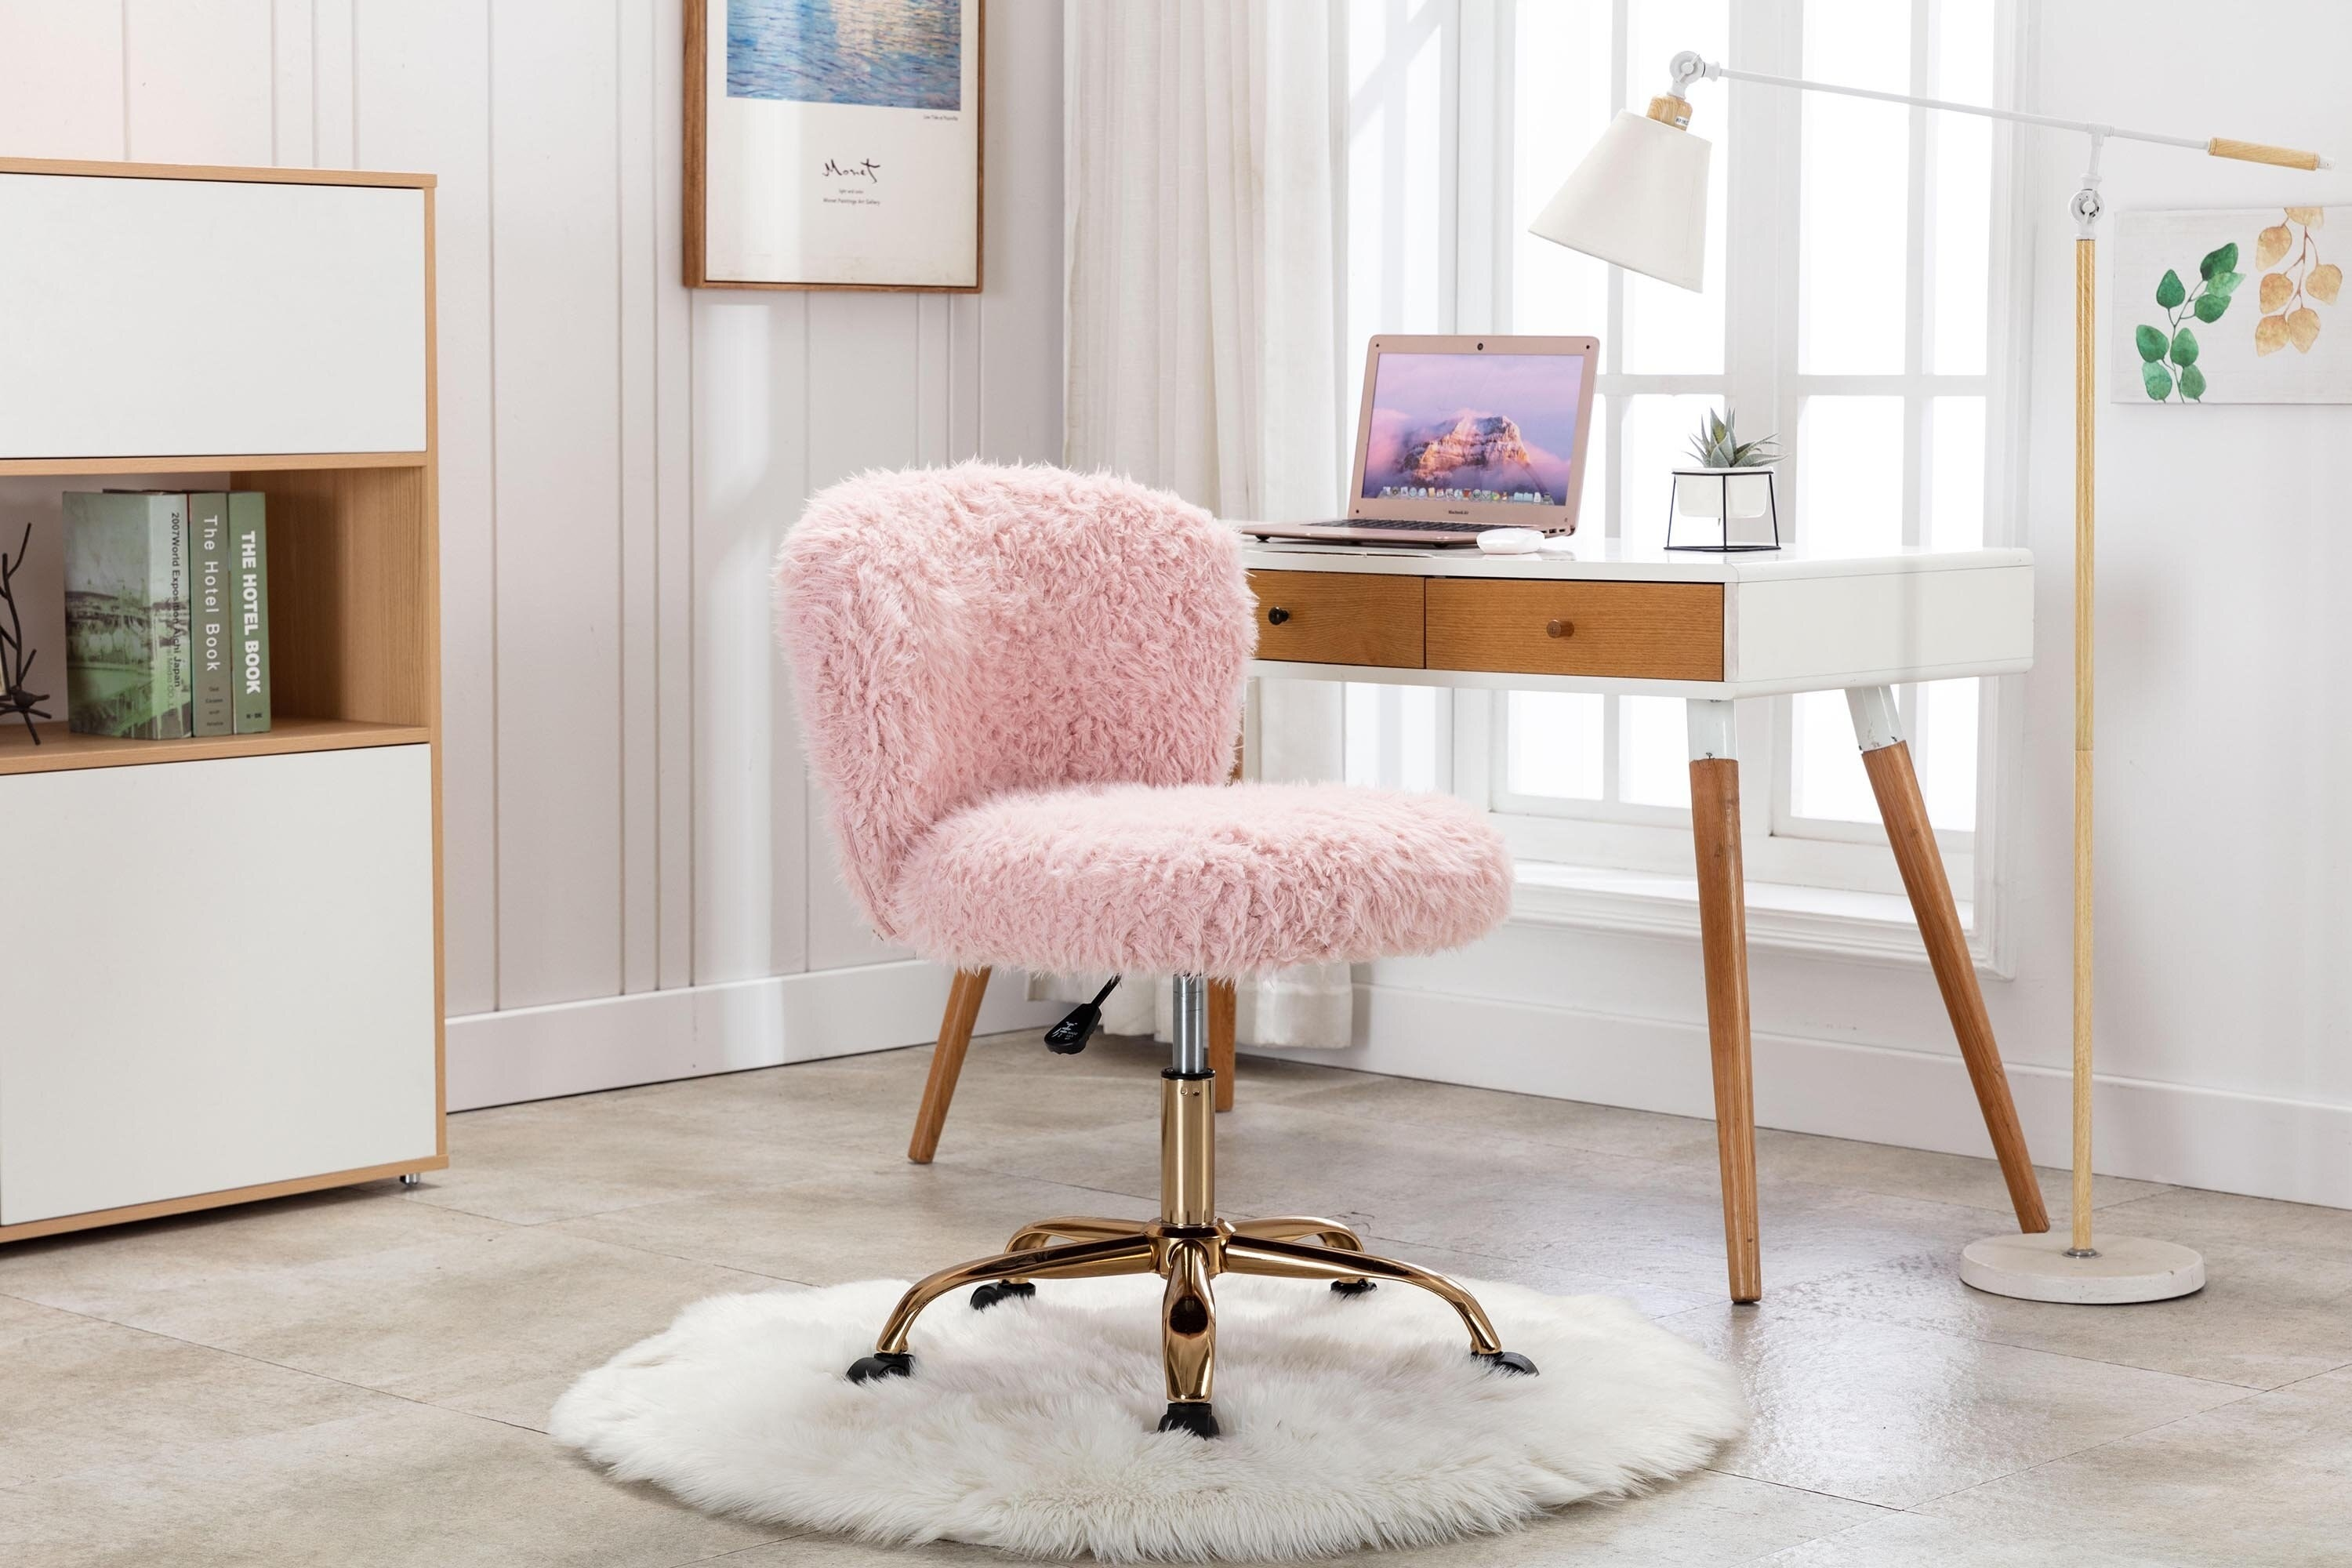 The fuzzy chair in pink